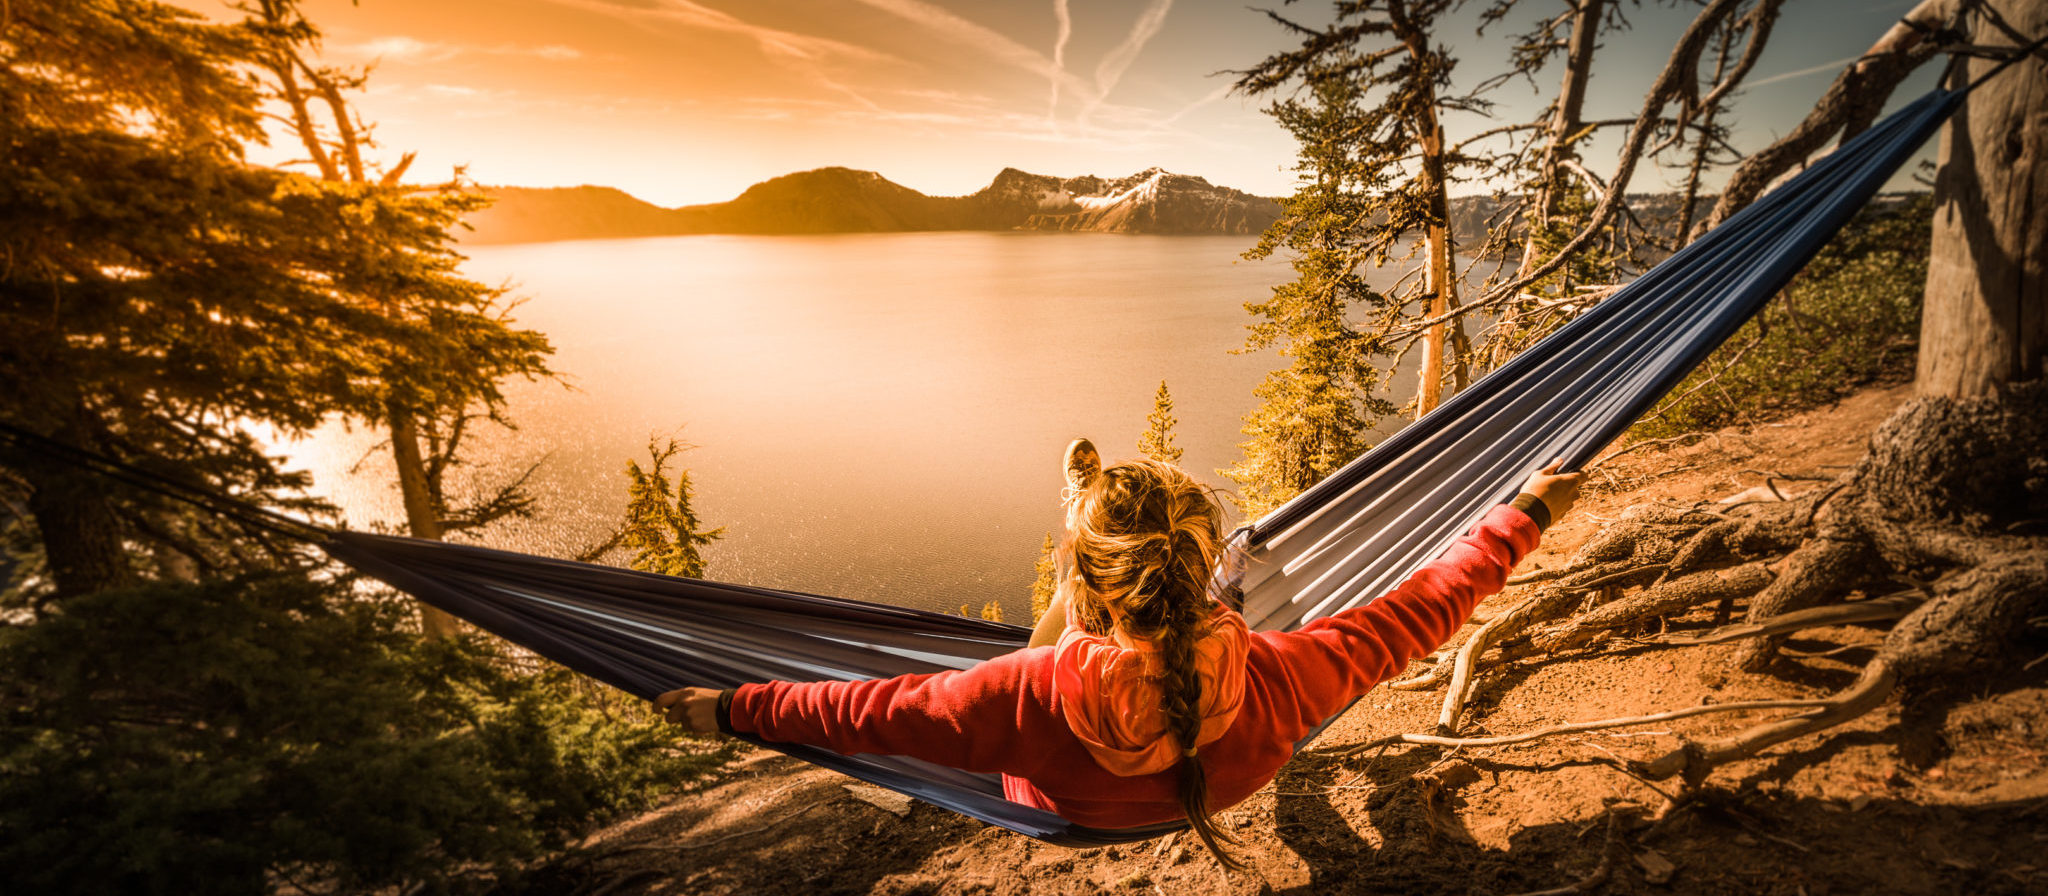 There is no better way to enjoy a trip to the outdoors better than resting on a hammock.